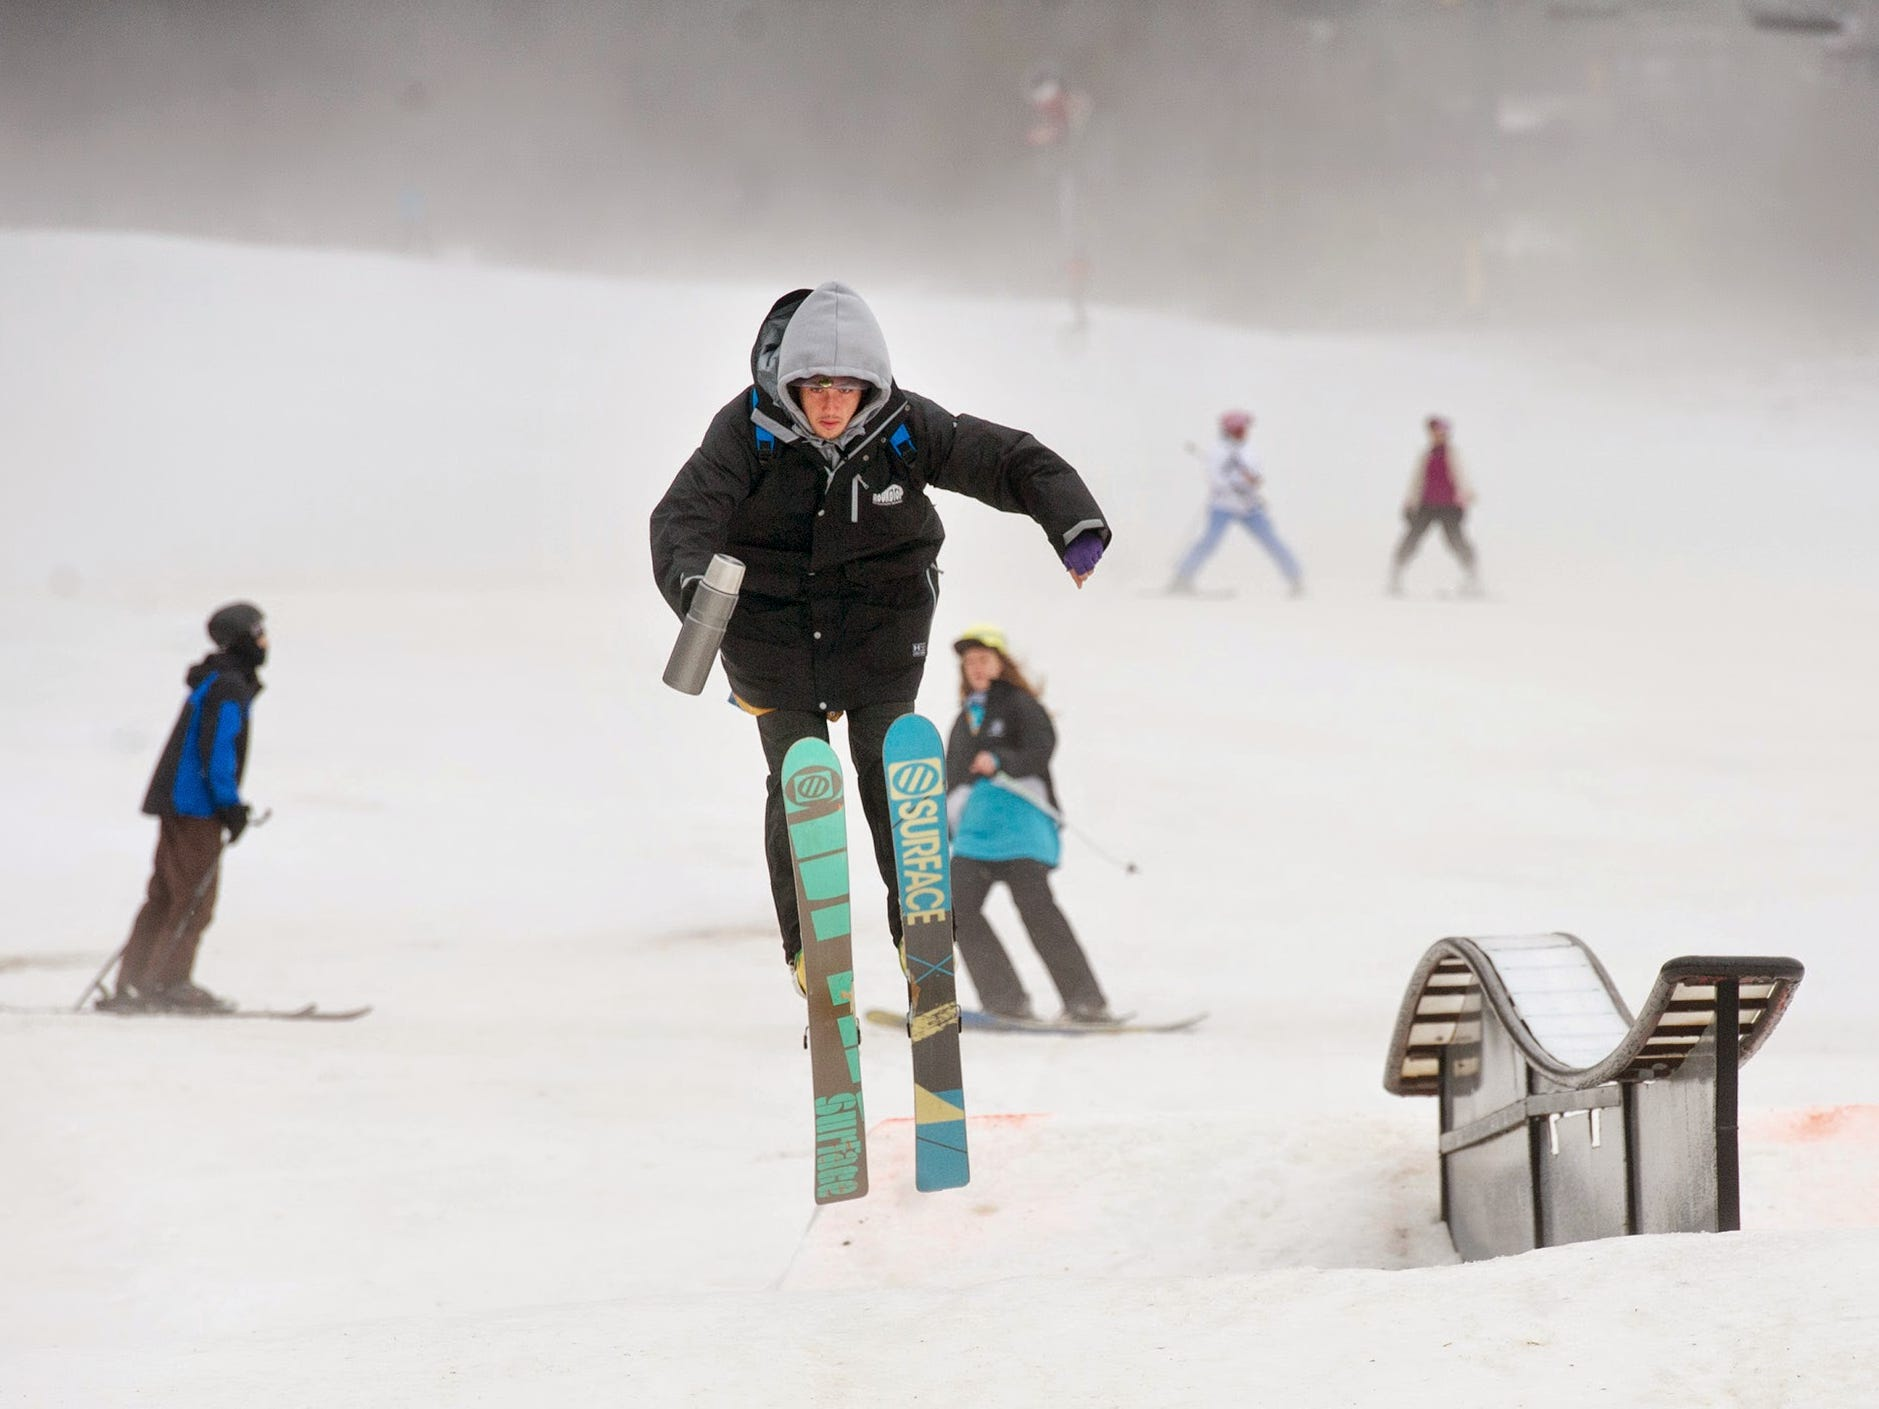 Fog hangs over cold snow from warm air and drizzle, but that didn't stop the skiing Sunday January 4, 2015 at Roundtop Mountain Resort in Warrington Township.